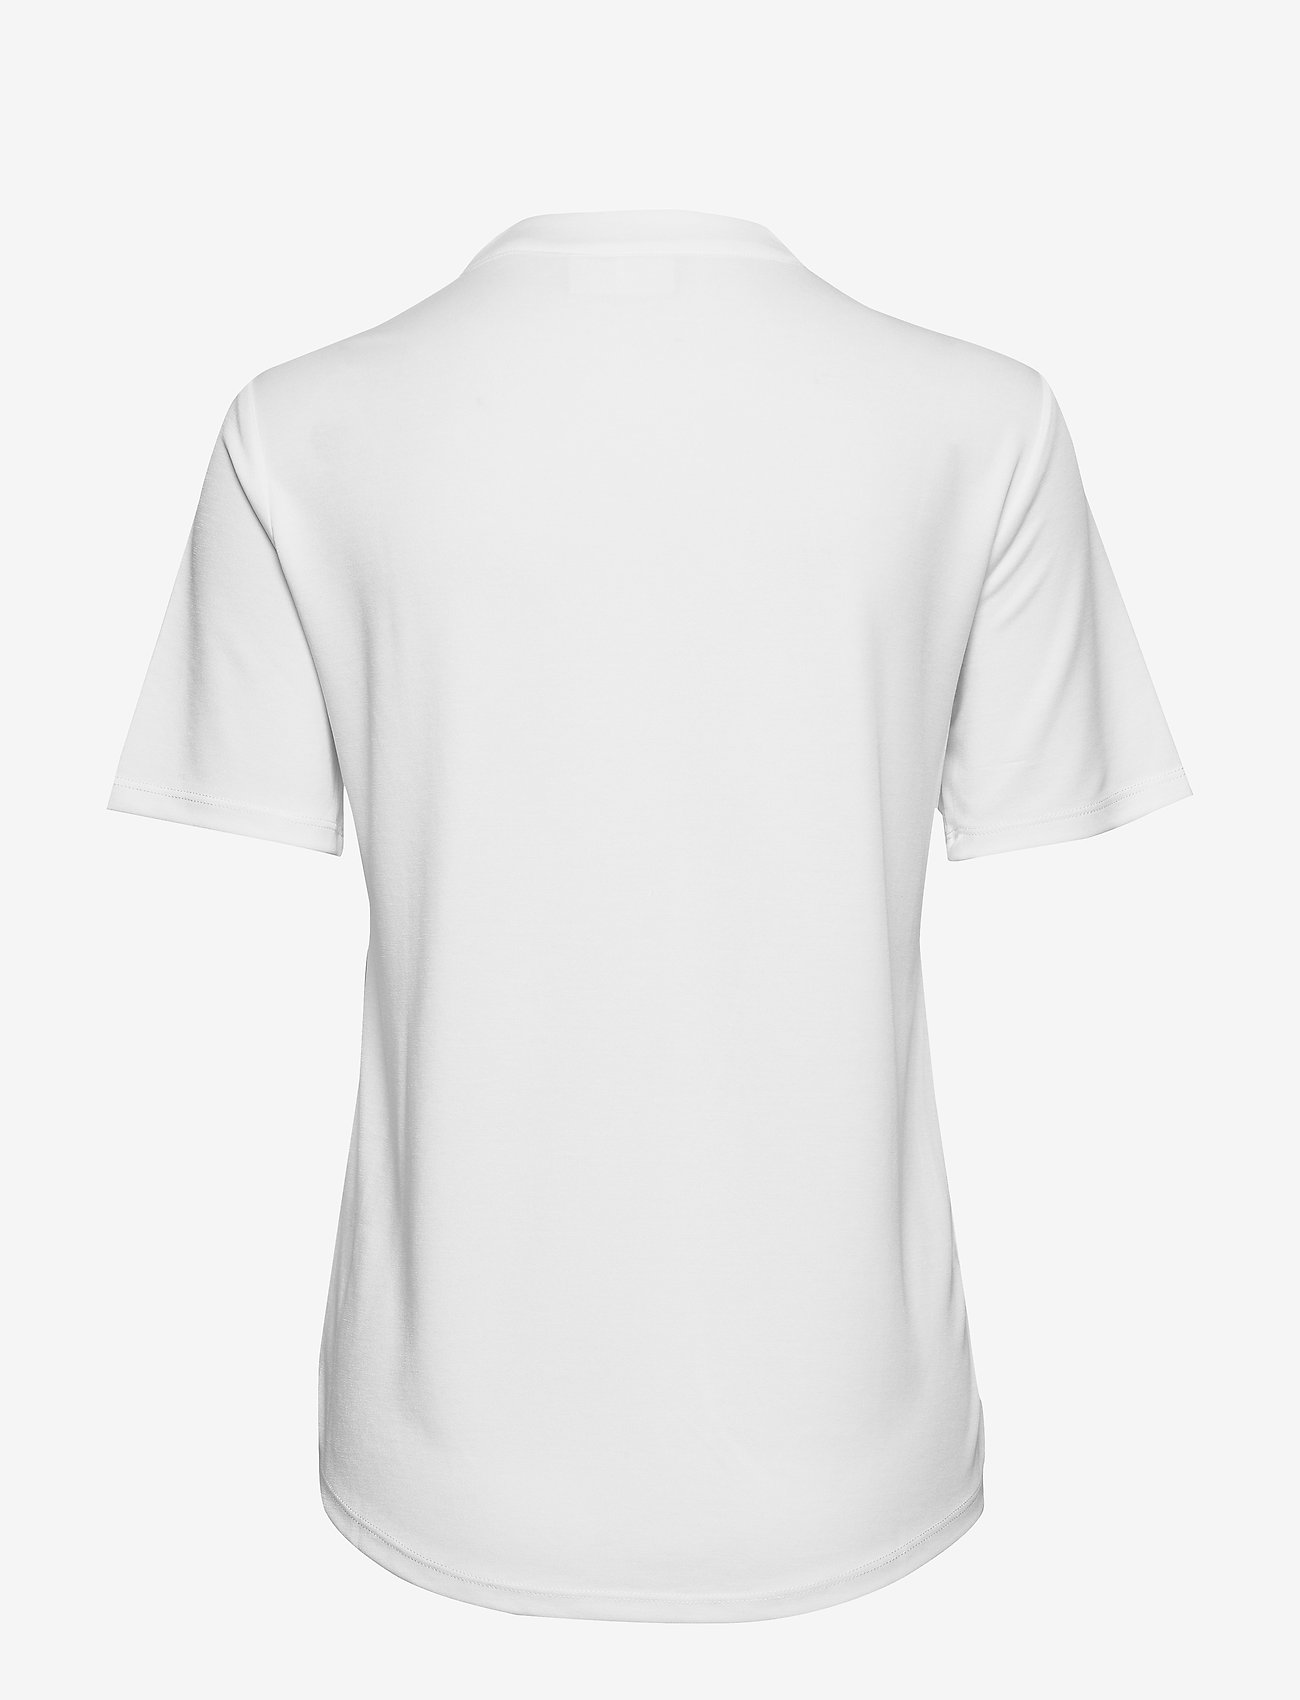 FREE/QUENT - YR-SS-BL - t-shirts basiques - offwhite 11-4800